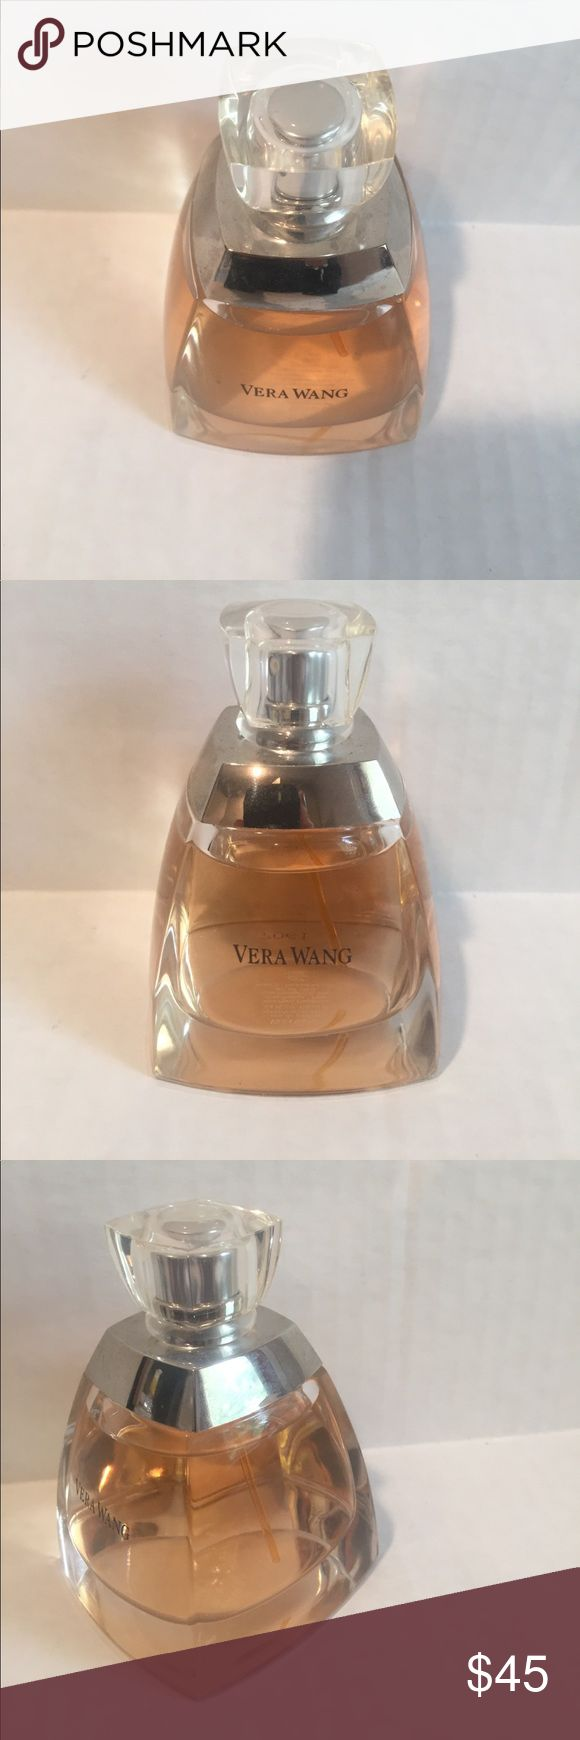 Vera Wang eau de parfum spray/vaporisateur 3.4 FL. This 3.4 FL. OZ. eau de parfum spray/vaporisateur bottle has captured desire in a modern floral bouquet. The first encounter is a flirtation that begins with Bulgarian rose calla lily and mandarin flower. The flirtation is followed by a passionate kiss of gardenia lotus iris and white stephanotis. The fragrance is wrapped in a final embrace of sheer musks white woods and precious floral nectar. There is approx. 96% or more left in this…